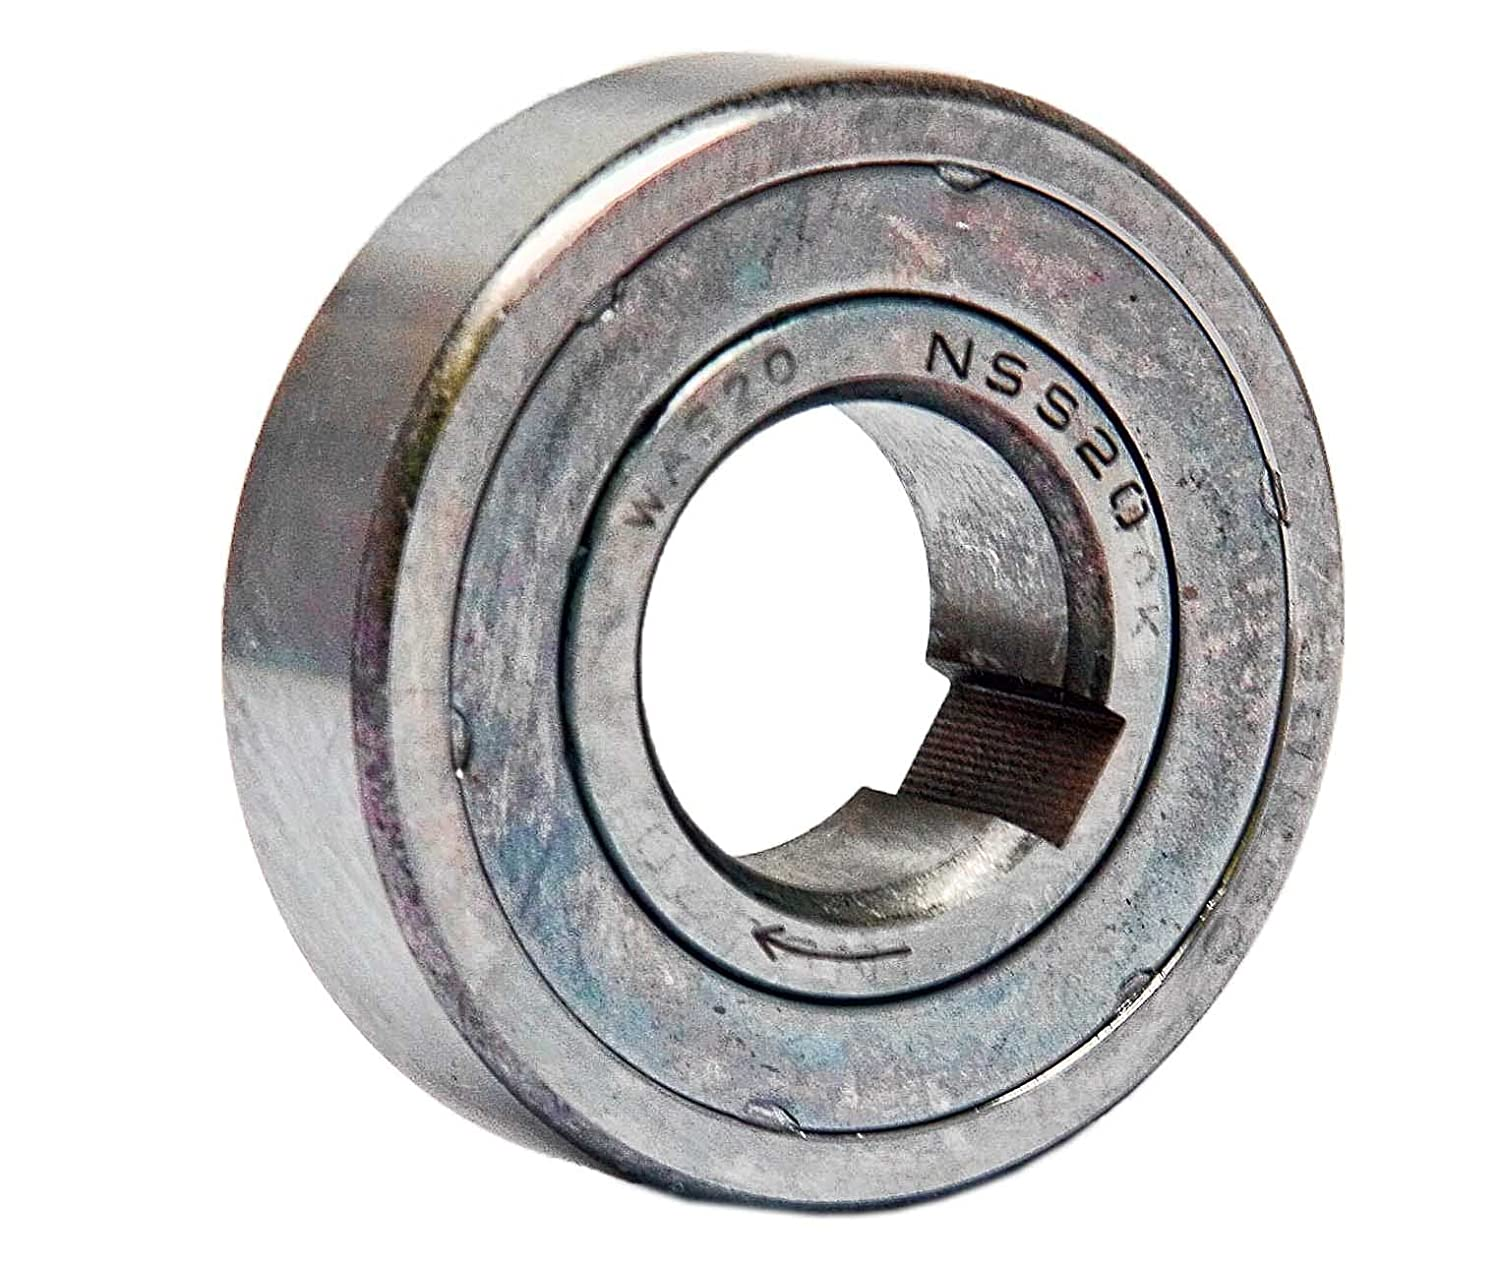 AS17 One Way 17x40x12 6203 Bearing Support Required Backstop Clutch